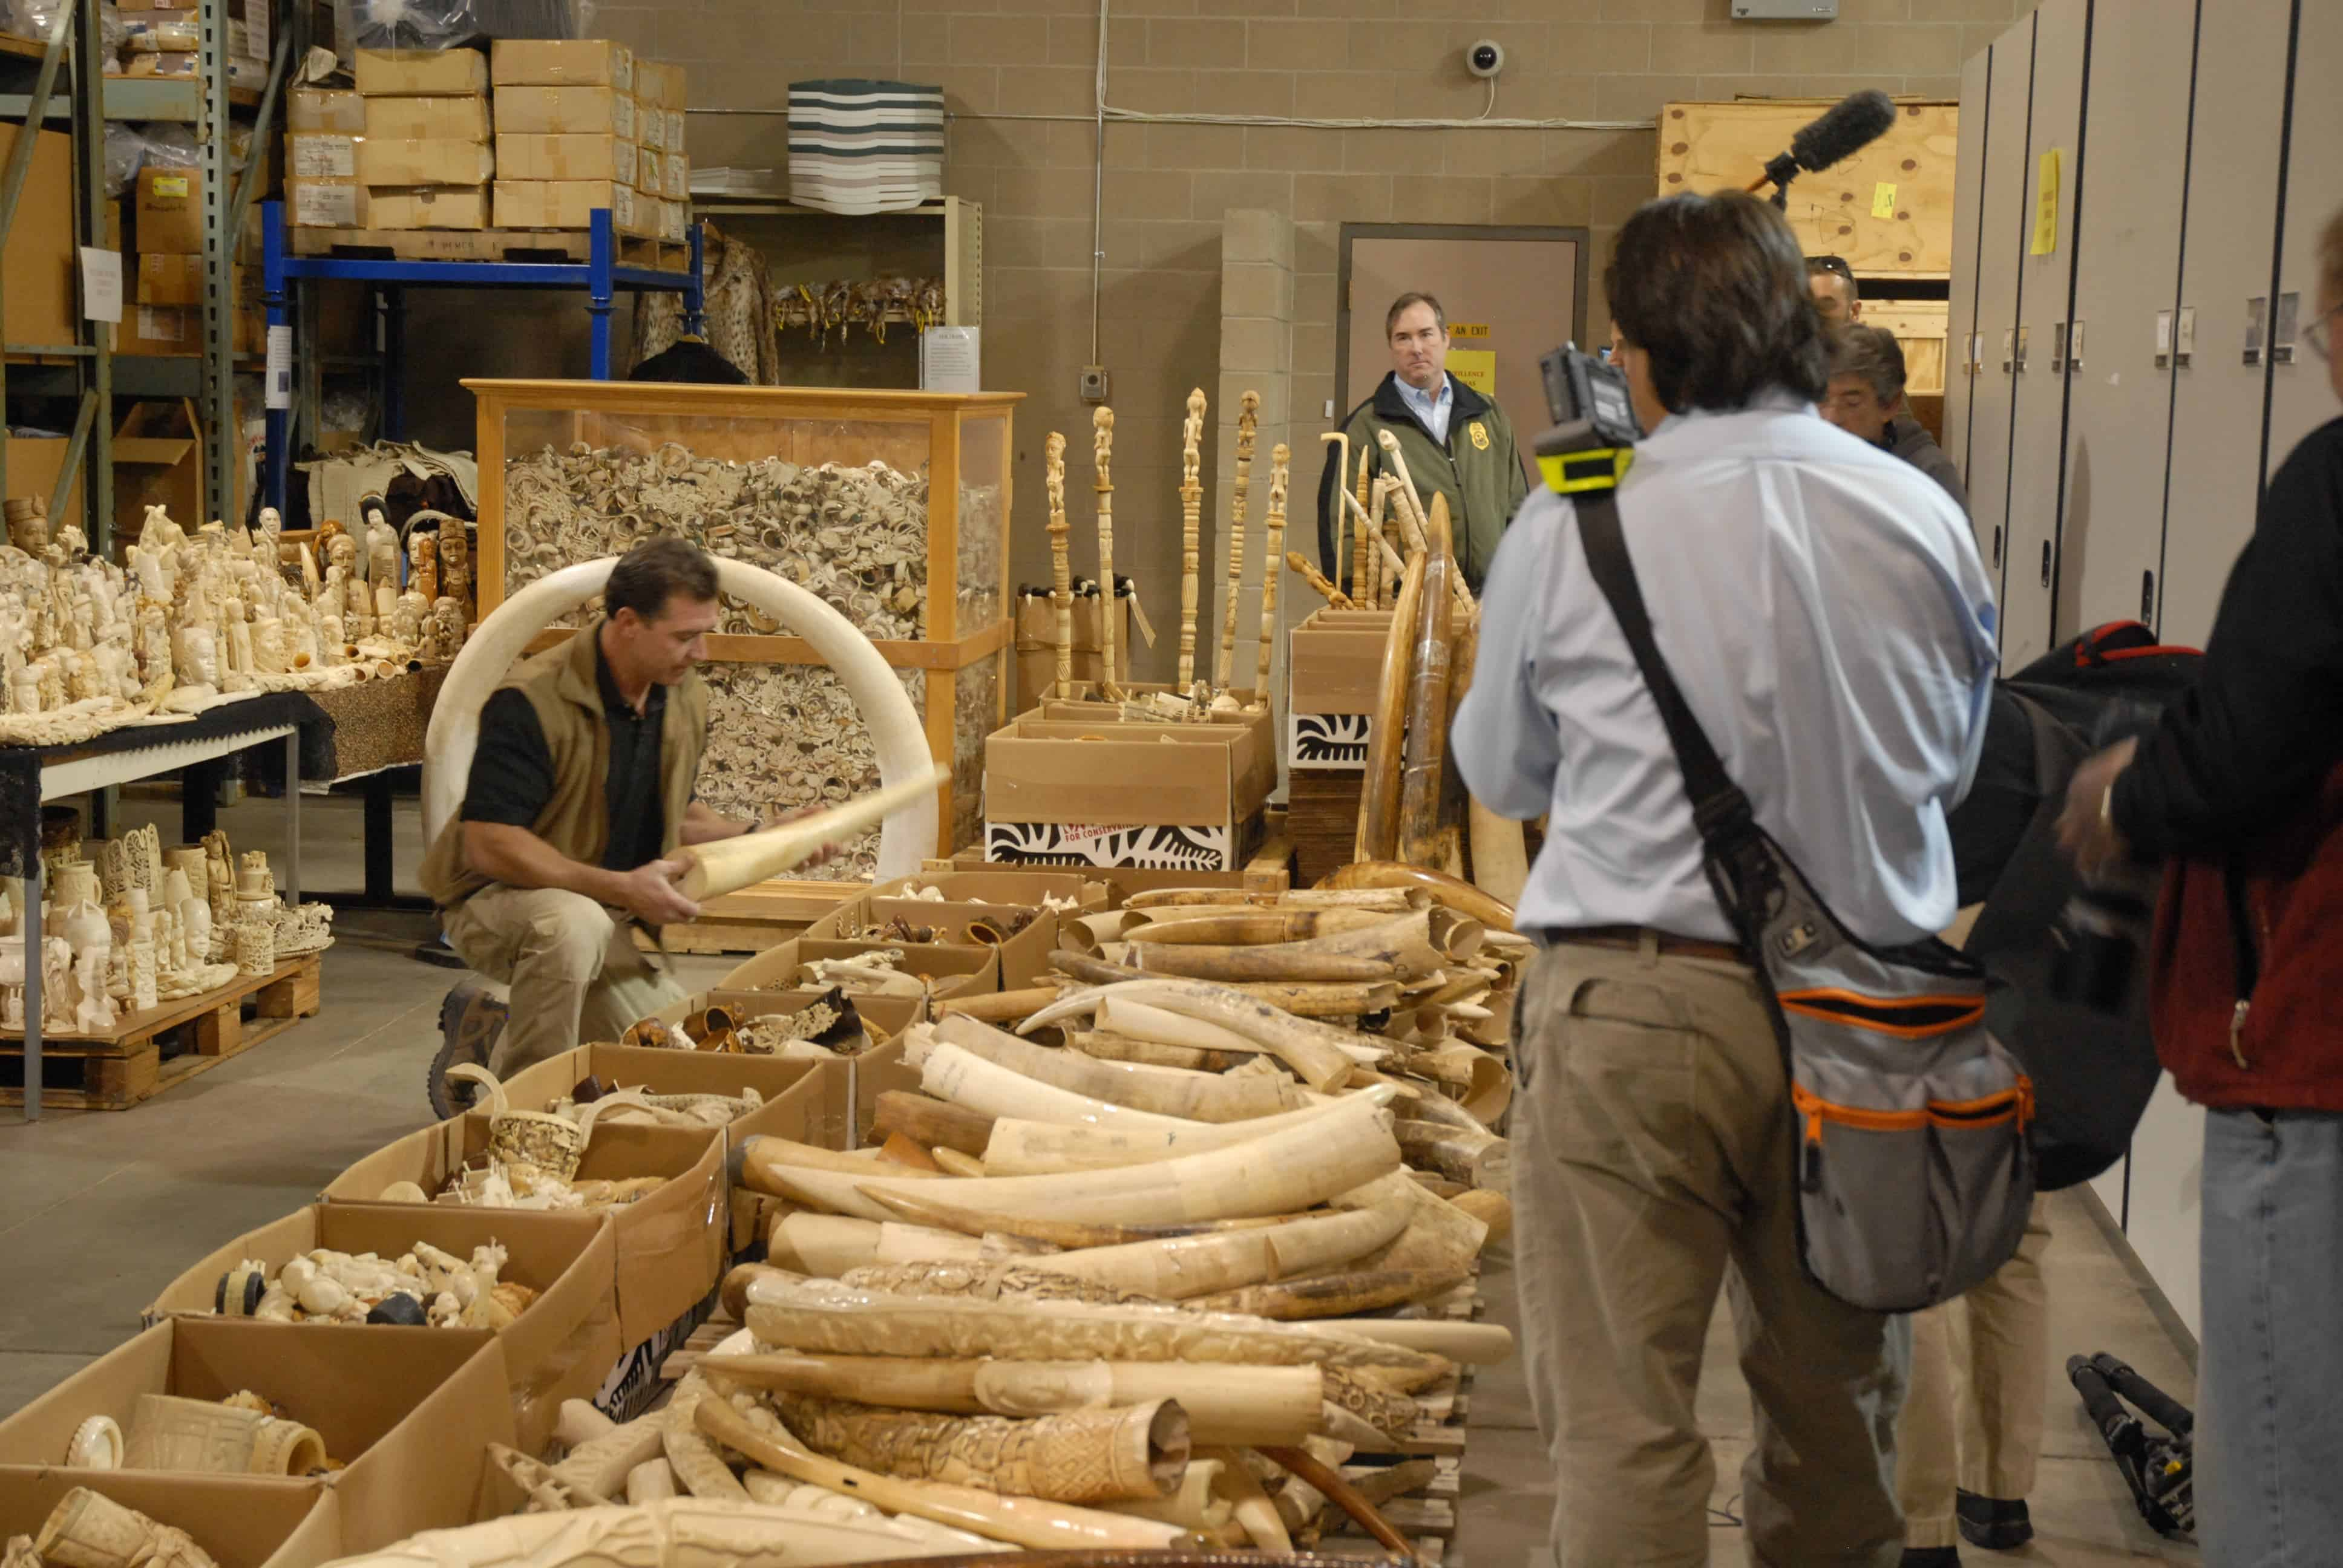 Seized ivory slated for destruction. Credit: Wikimedia Commons